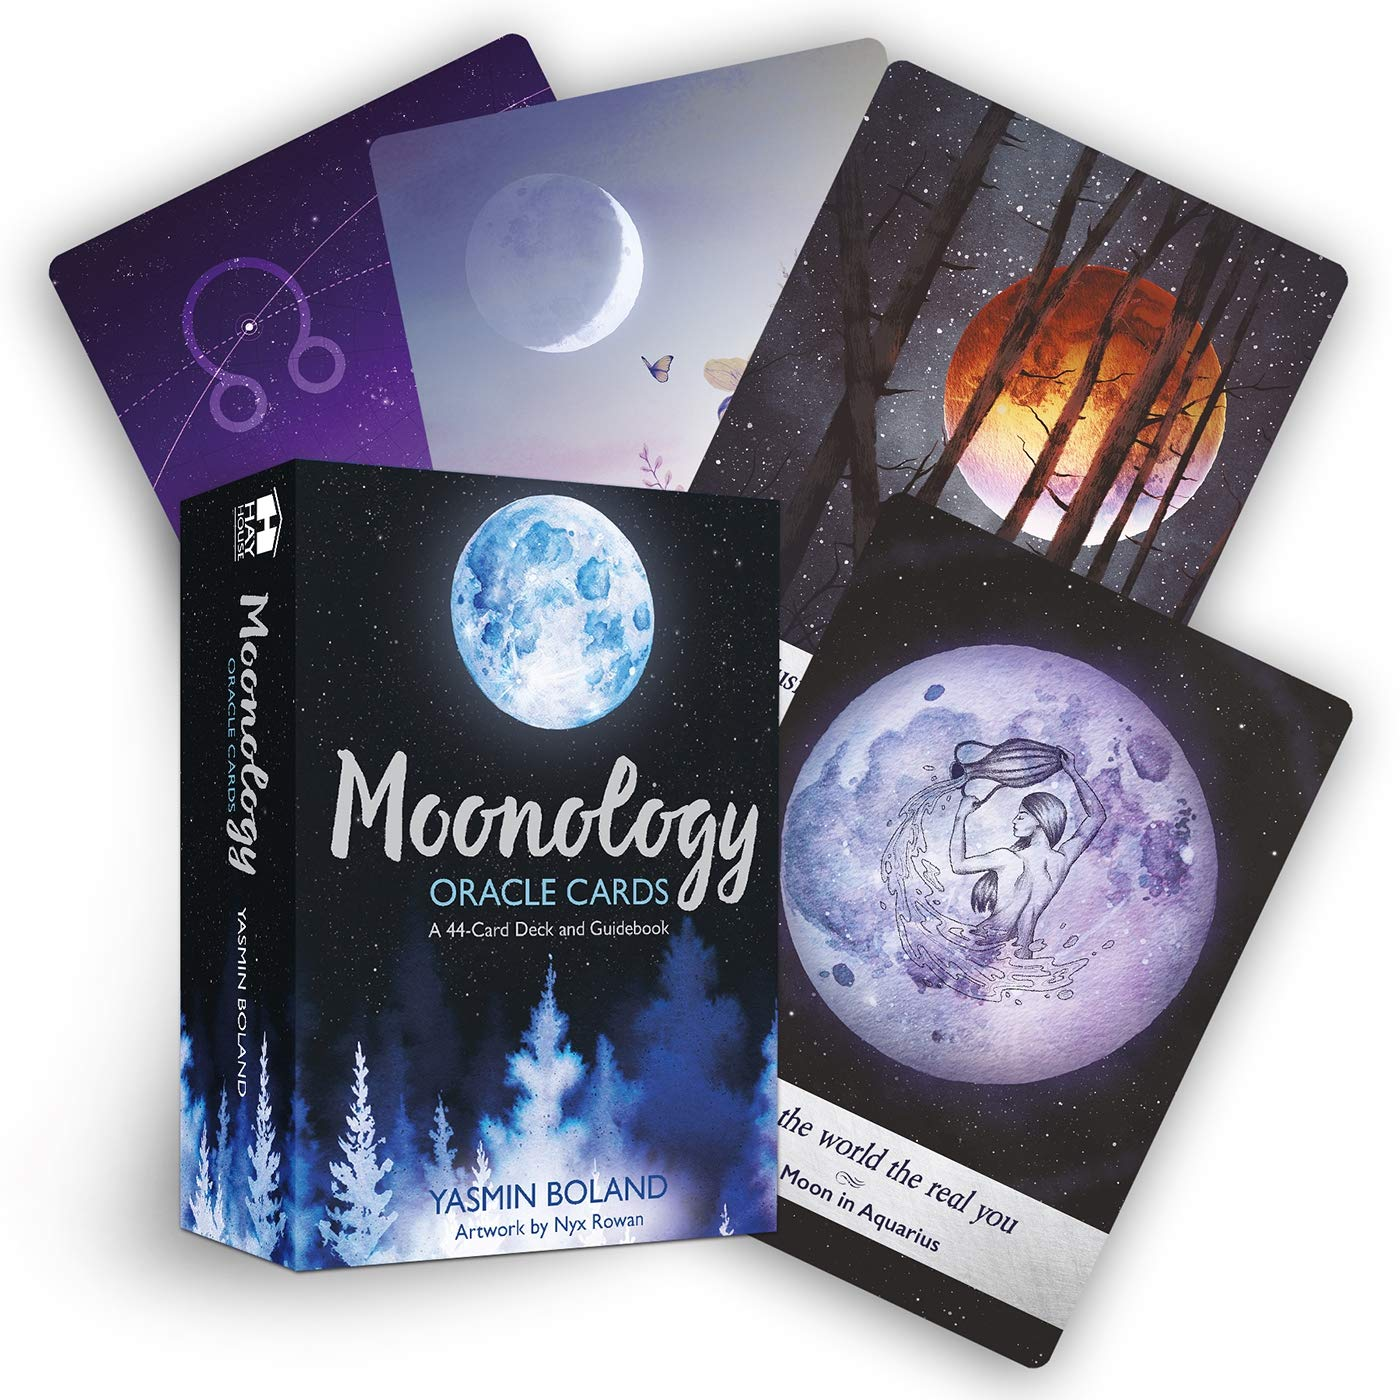 Moonology Oracle Cards 44 Card Deck & Book by Yasmin Boland